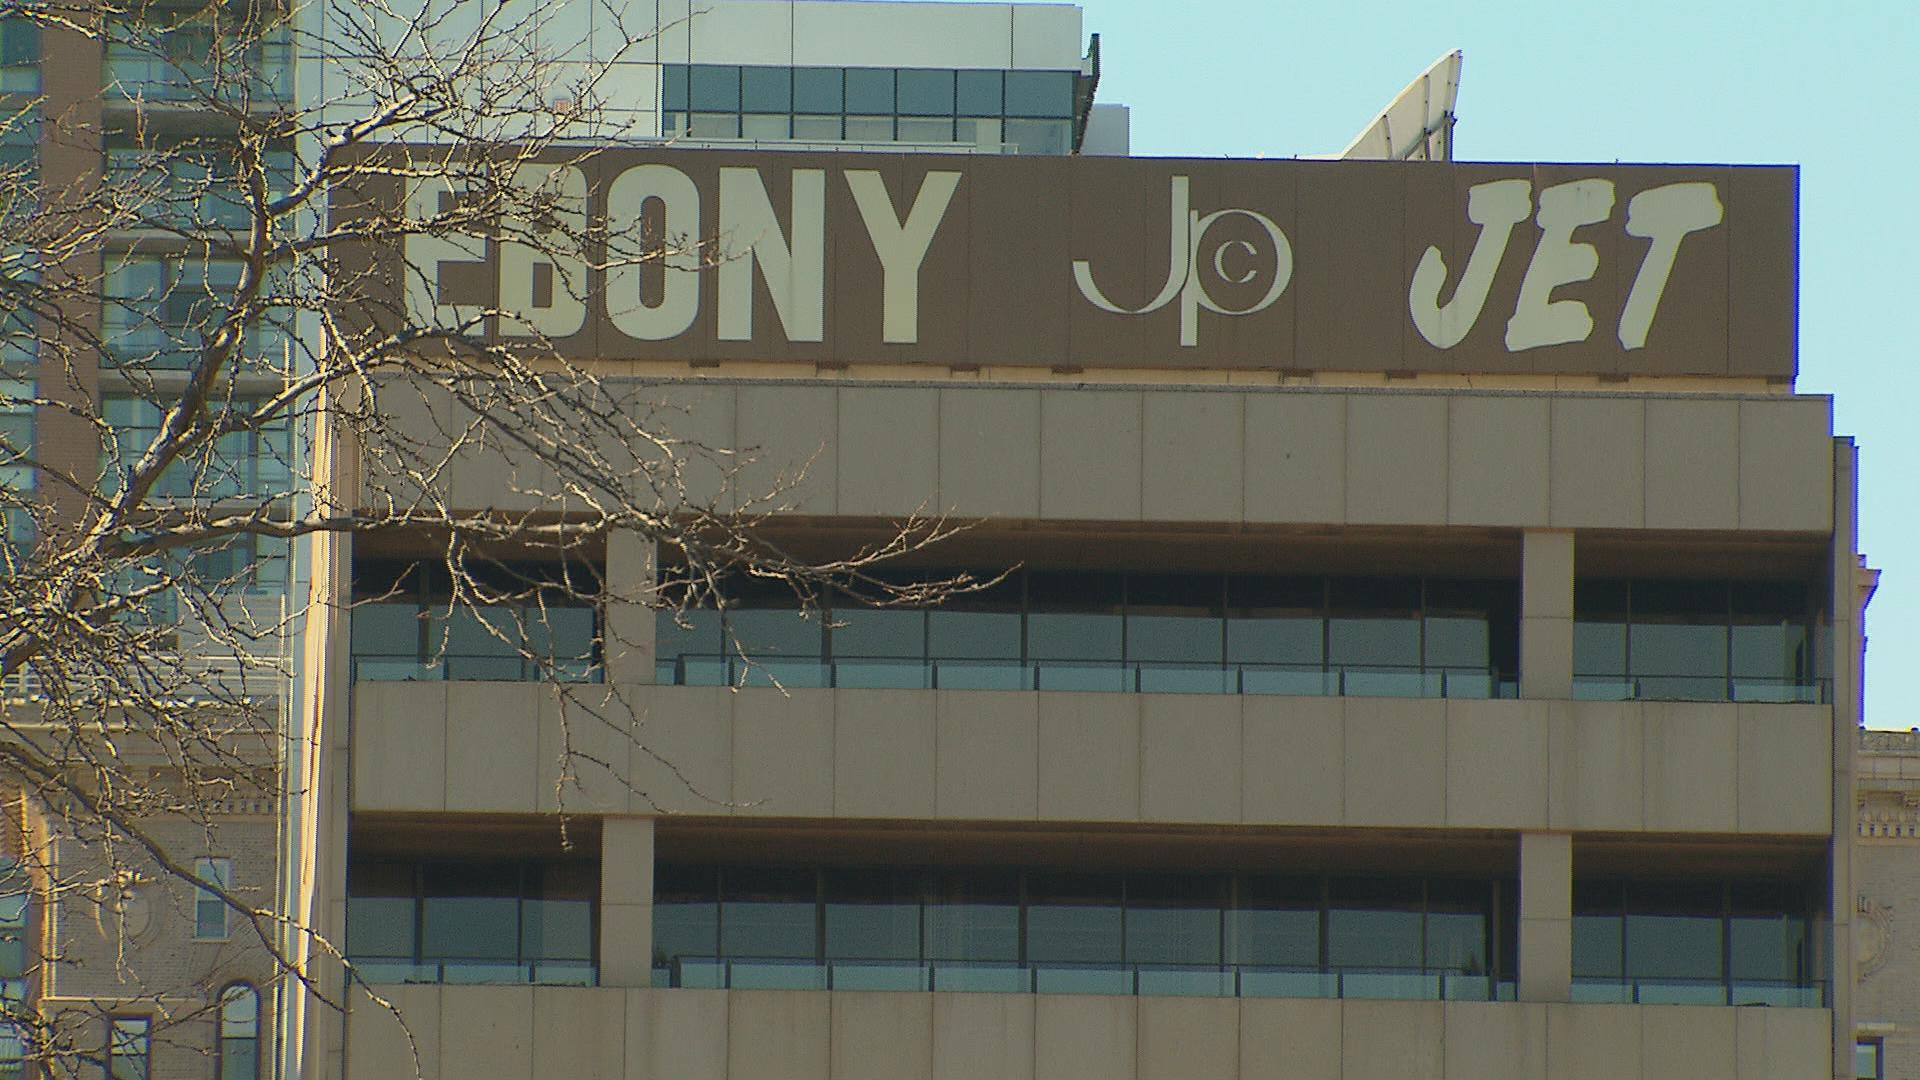 Ebony jet building